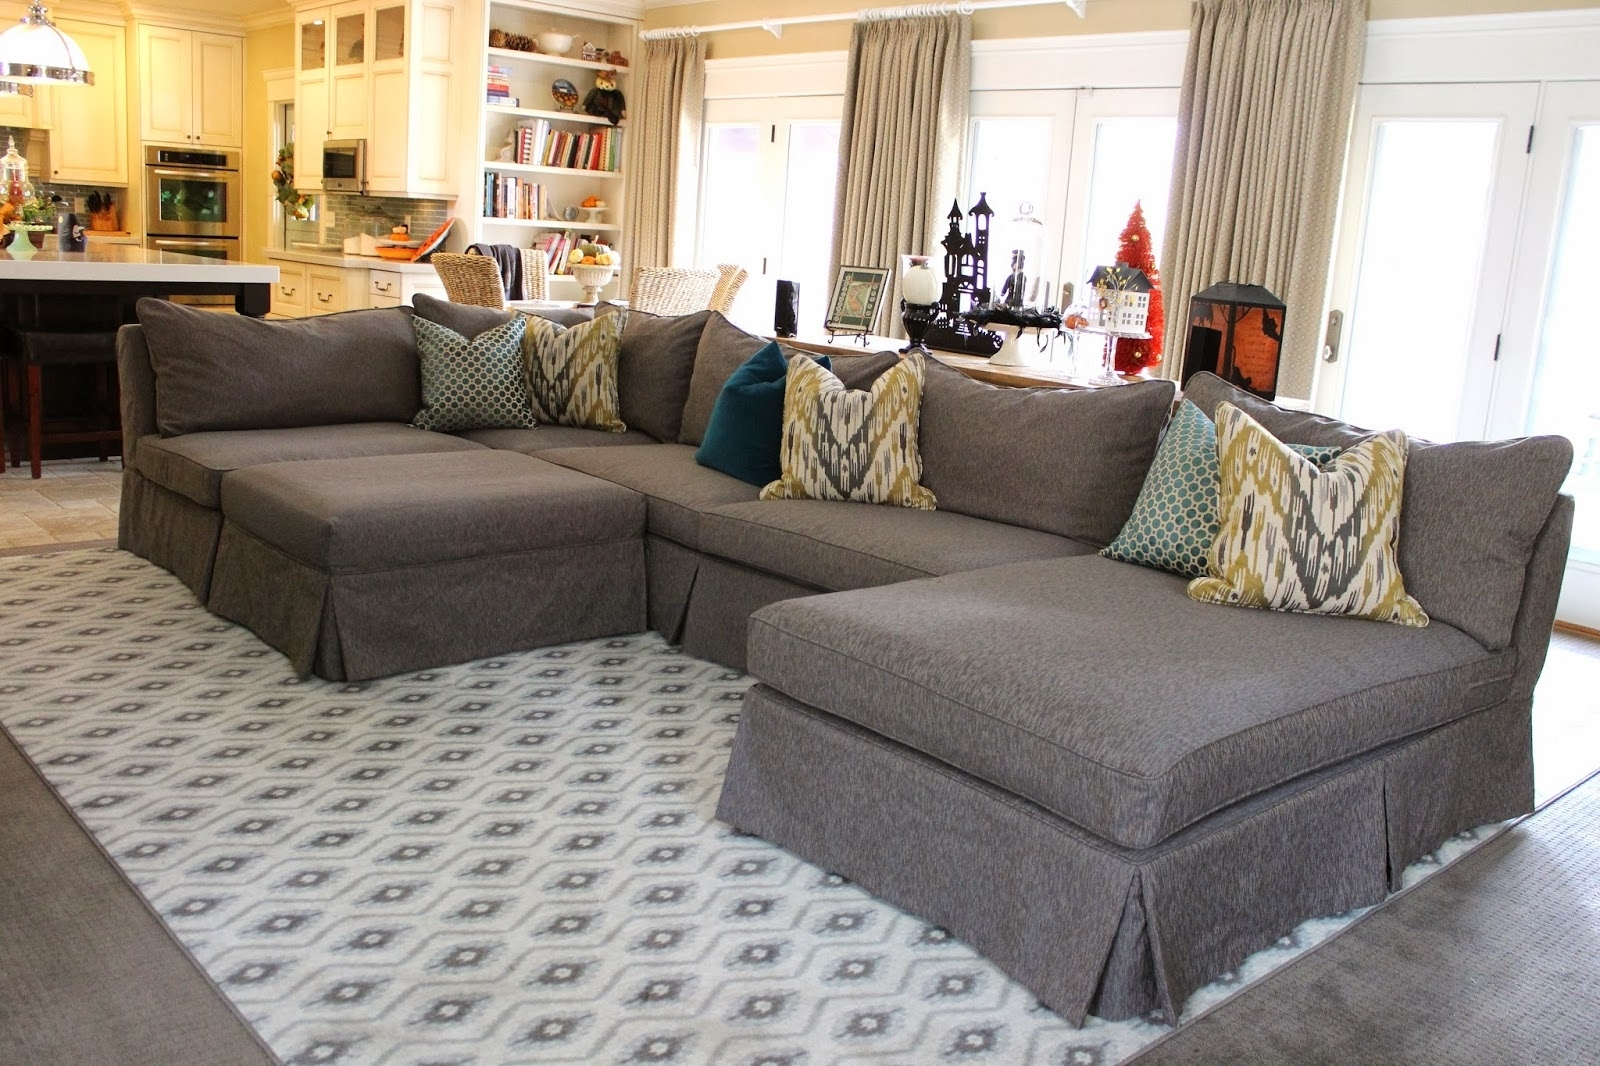 Slipcovers For Sectional Couches (View 8 of 15)